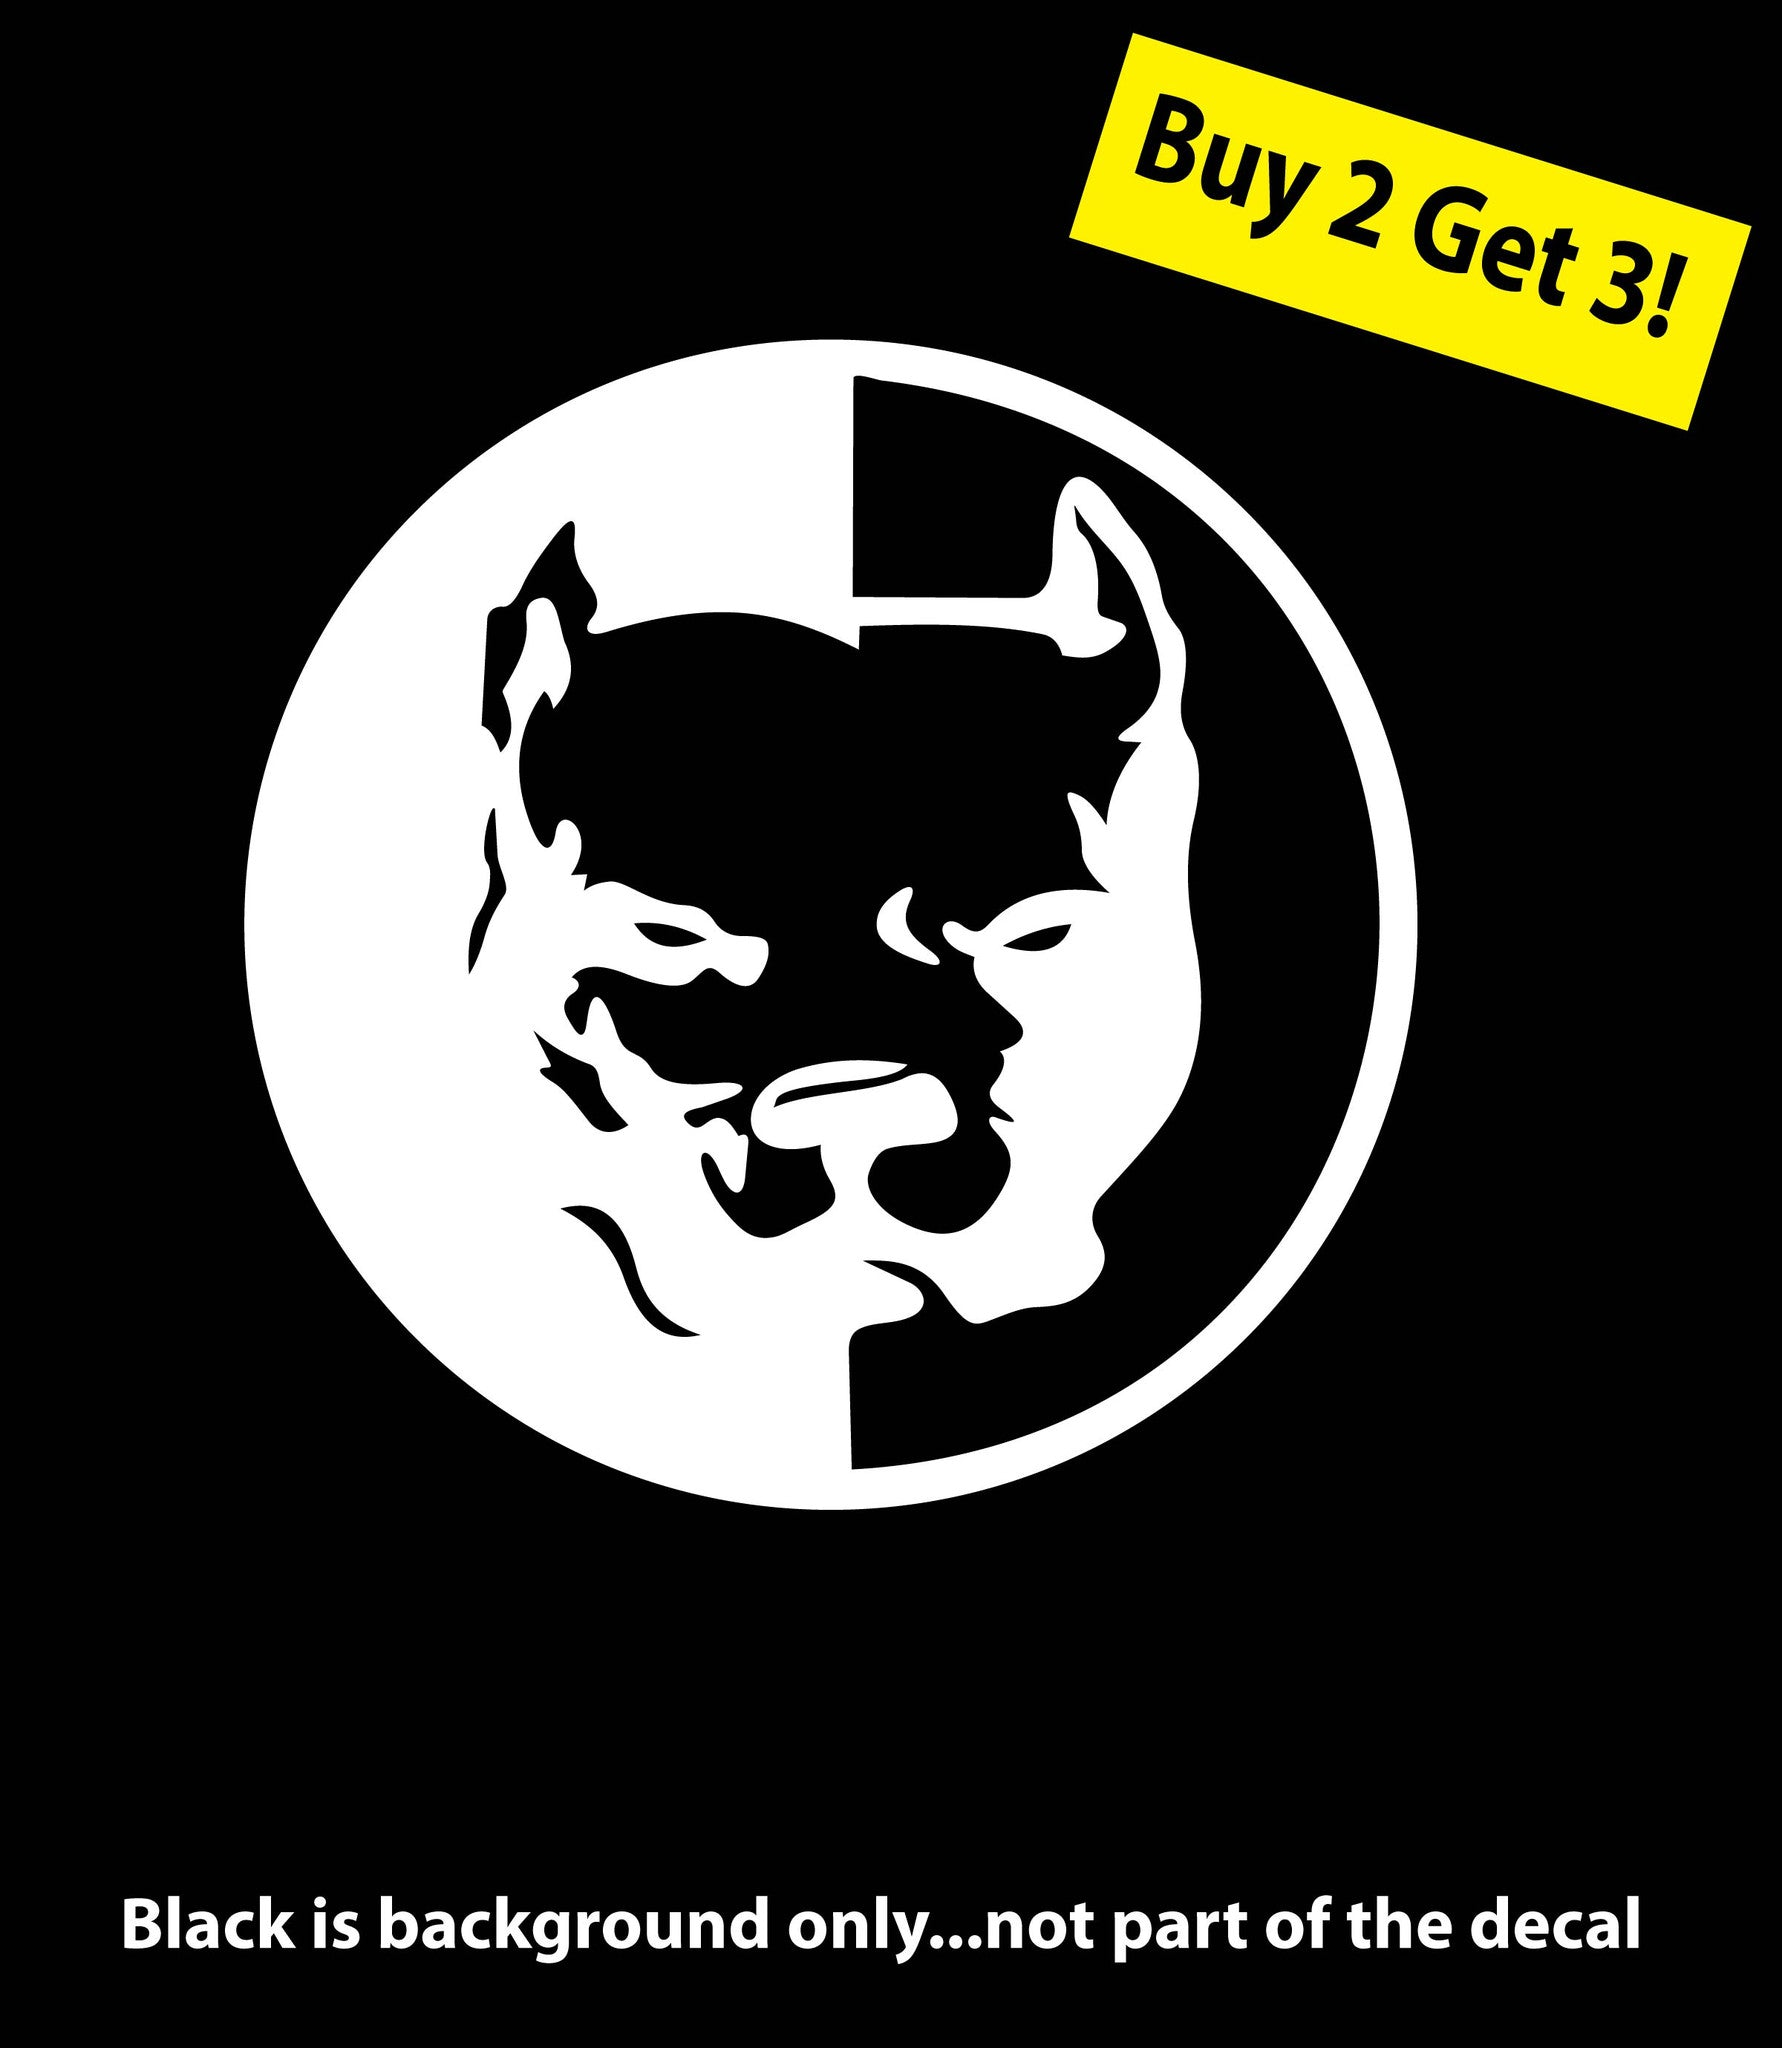 Banksy panda with guns sticker truck stickers logos and vinyl - B4b Pit Bull Dog Pitbull Sticker Decal Car Truck Window Die Cut Free Shipping